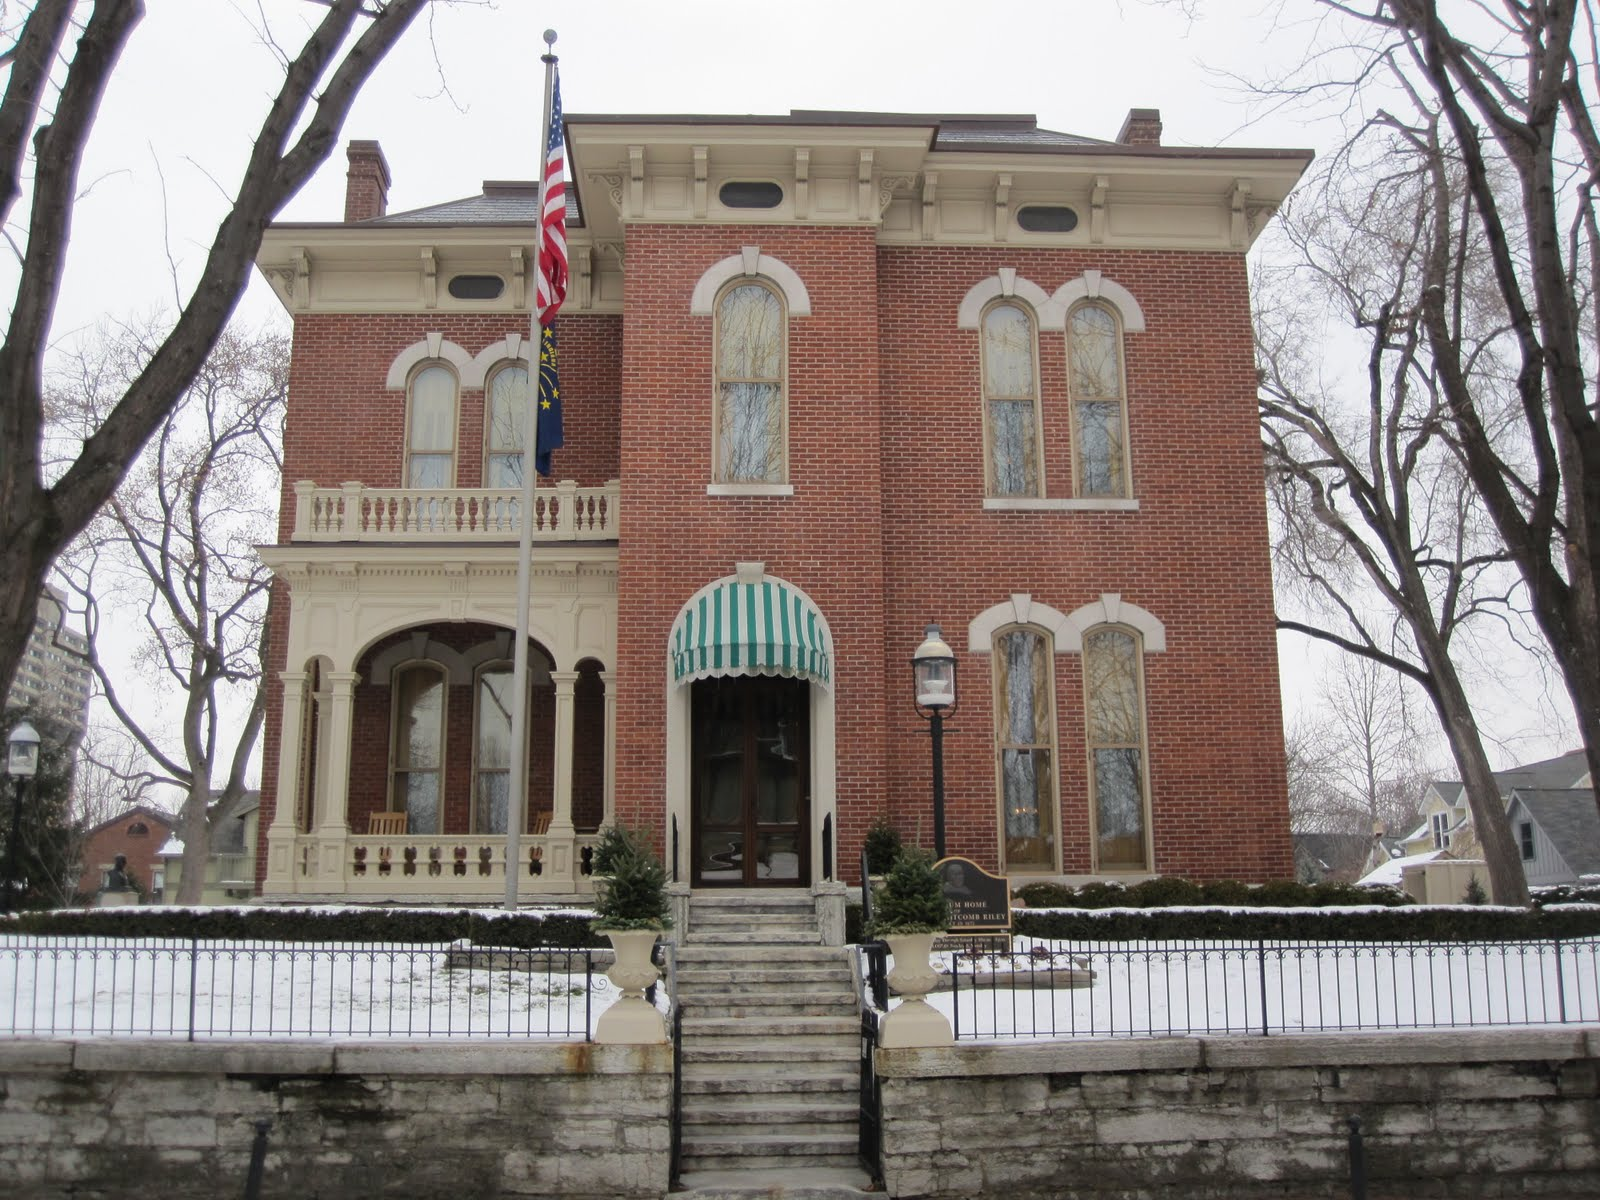 A front view of the James Whitcomb Riley Home and Museum